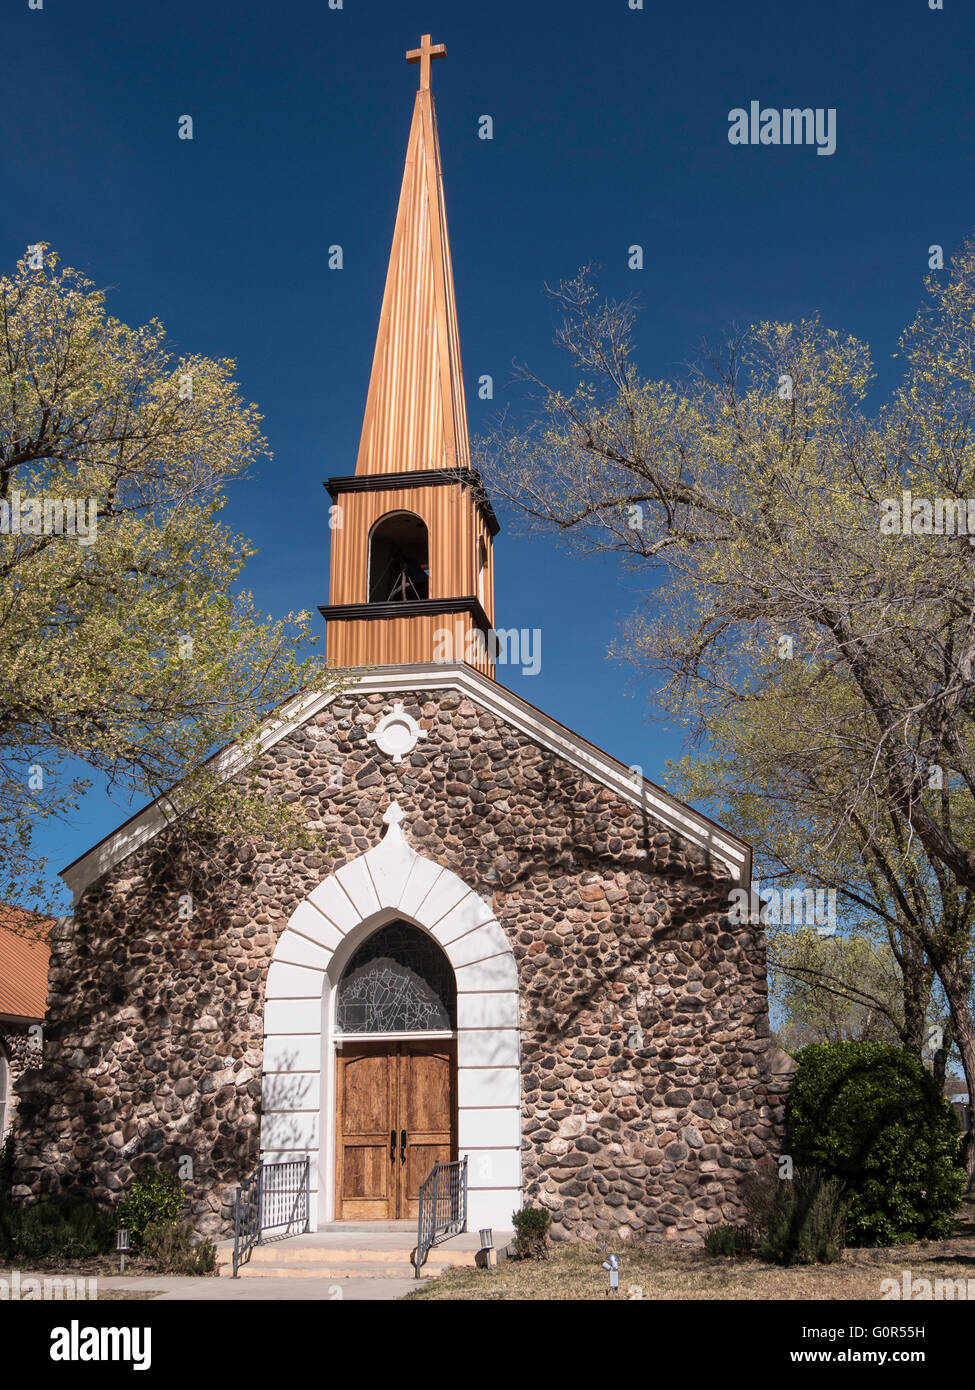 Saint Paul's Episcopal Church, Marfa, Texas. - Stock Image